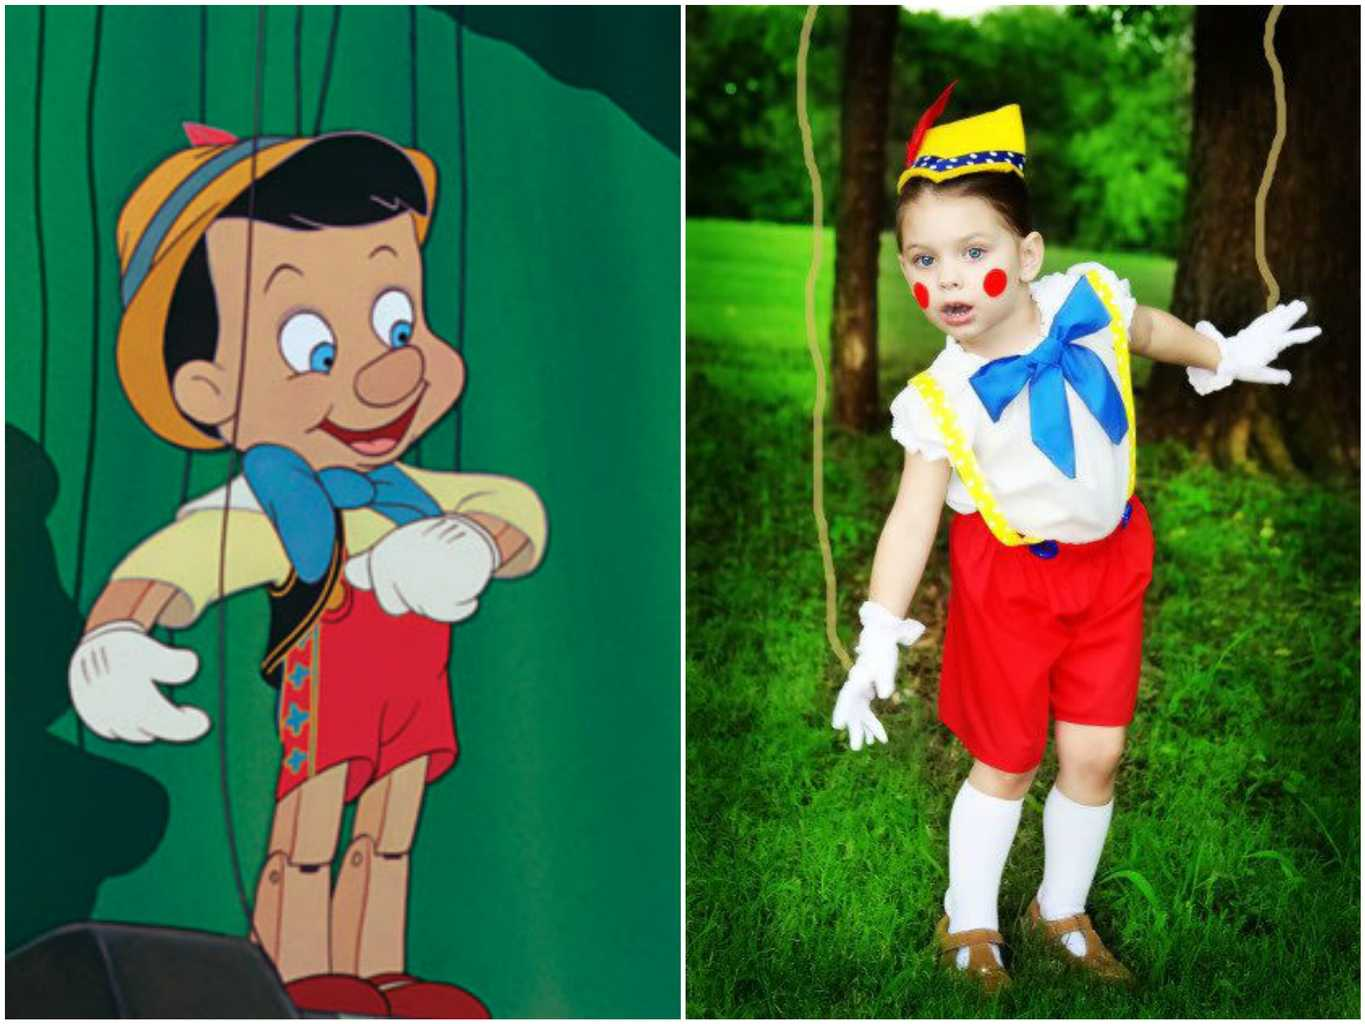 World book day 51 easy diy costume ideas closer a classic book character you cant go far wrong with pinocchio credit disney etsy heavenly things for you disney etsy heavenly things for you solutioingenieria Images